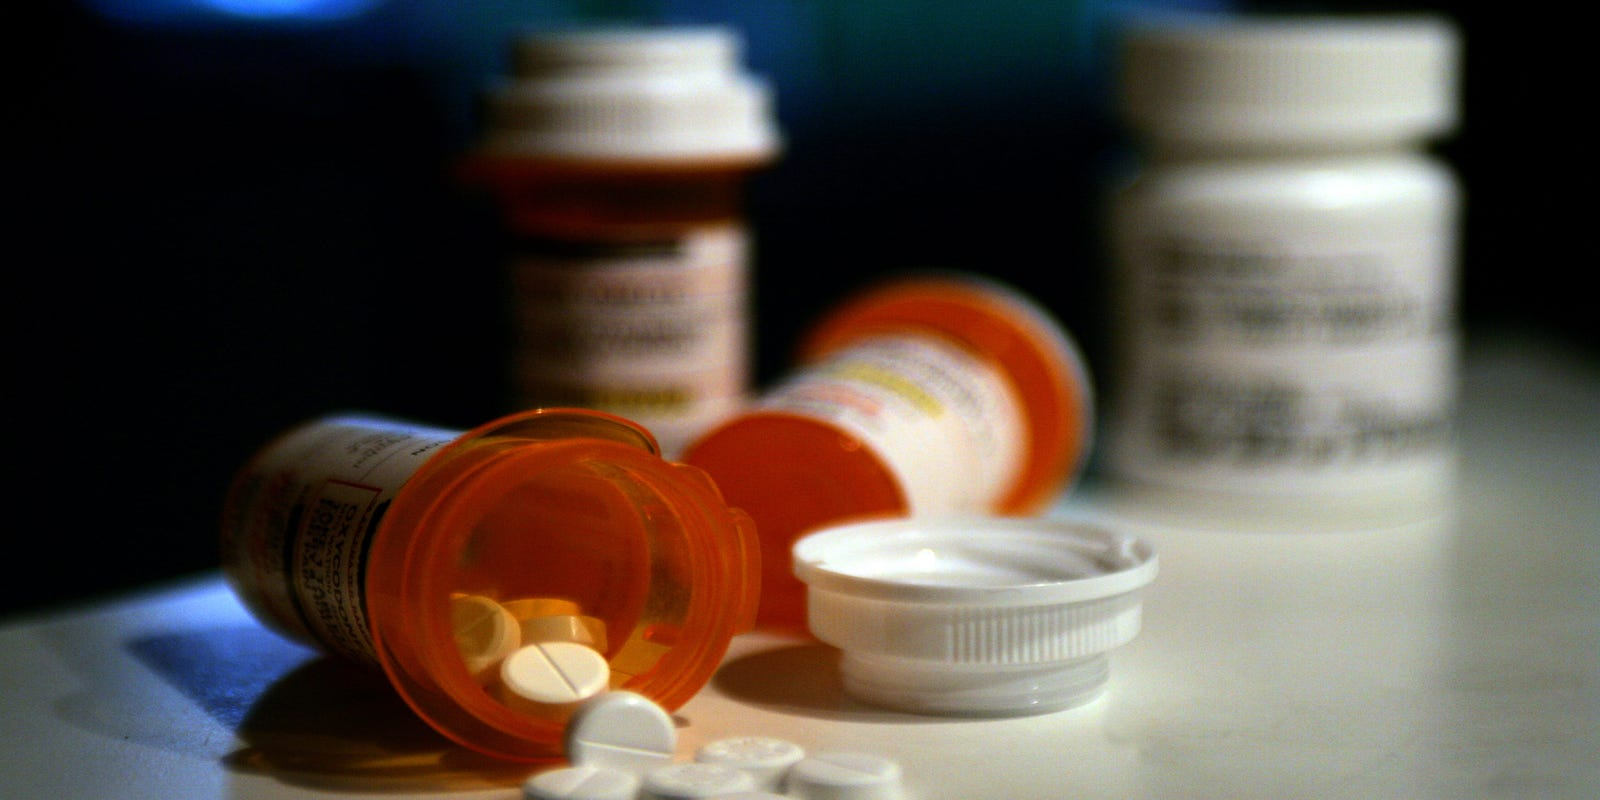 Clifton surgeon who allegedly over-prescribed addictive painkillers barred from practice